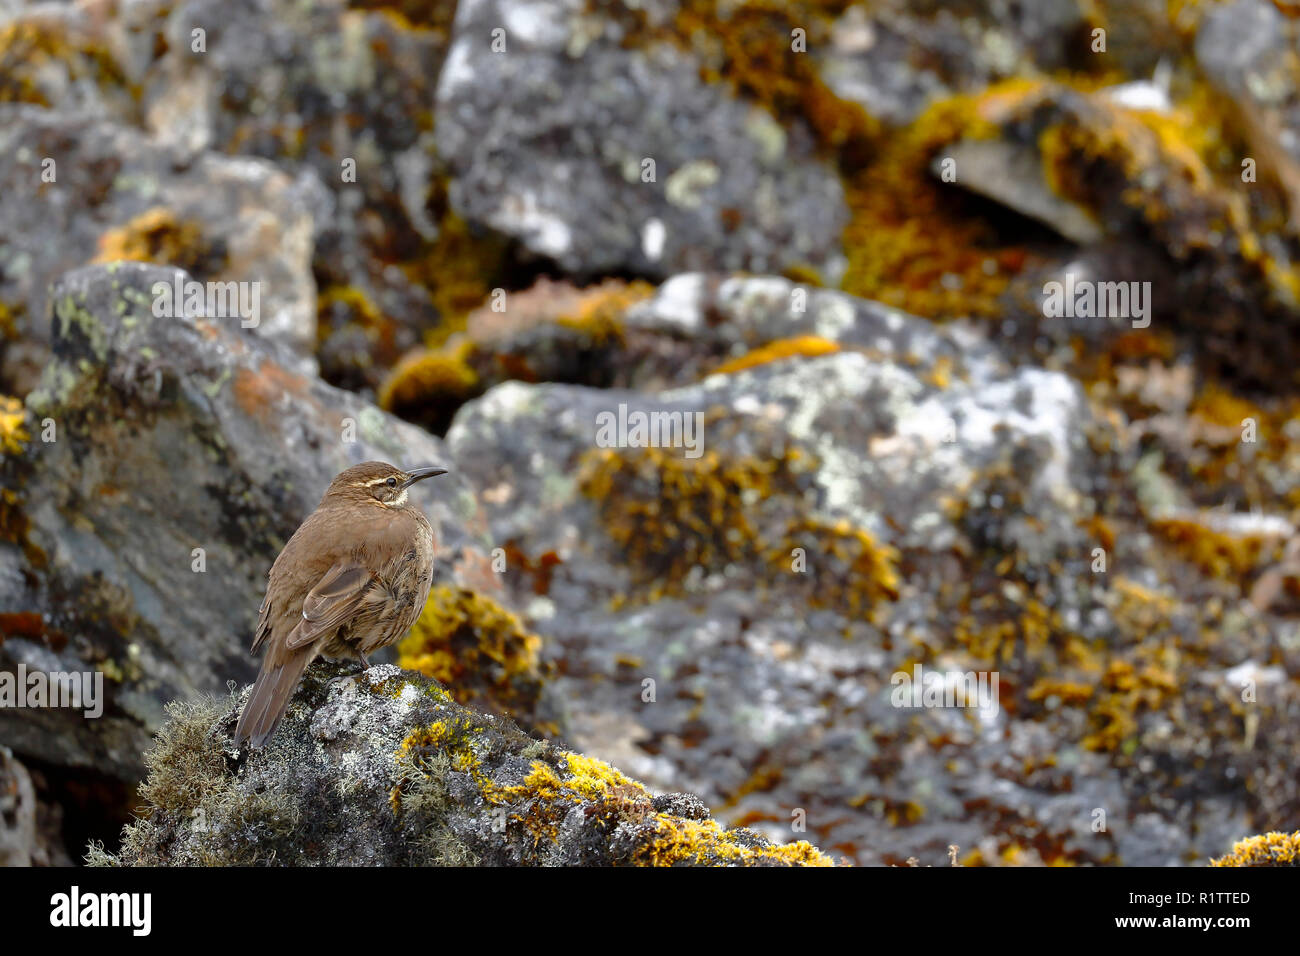 Beautiful specimen of Royal cinclodes (Cinclodes aricomae) that is in critical danger of extinction, perched on a rock in its natural environment. Hua - Stock Image